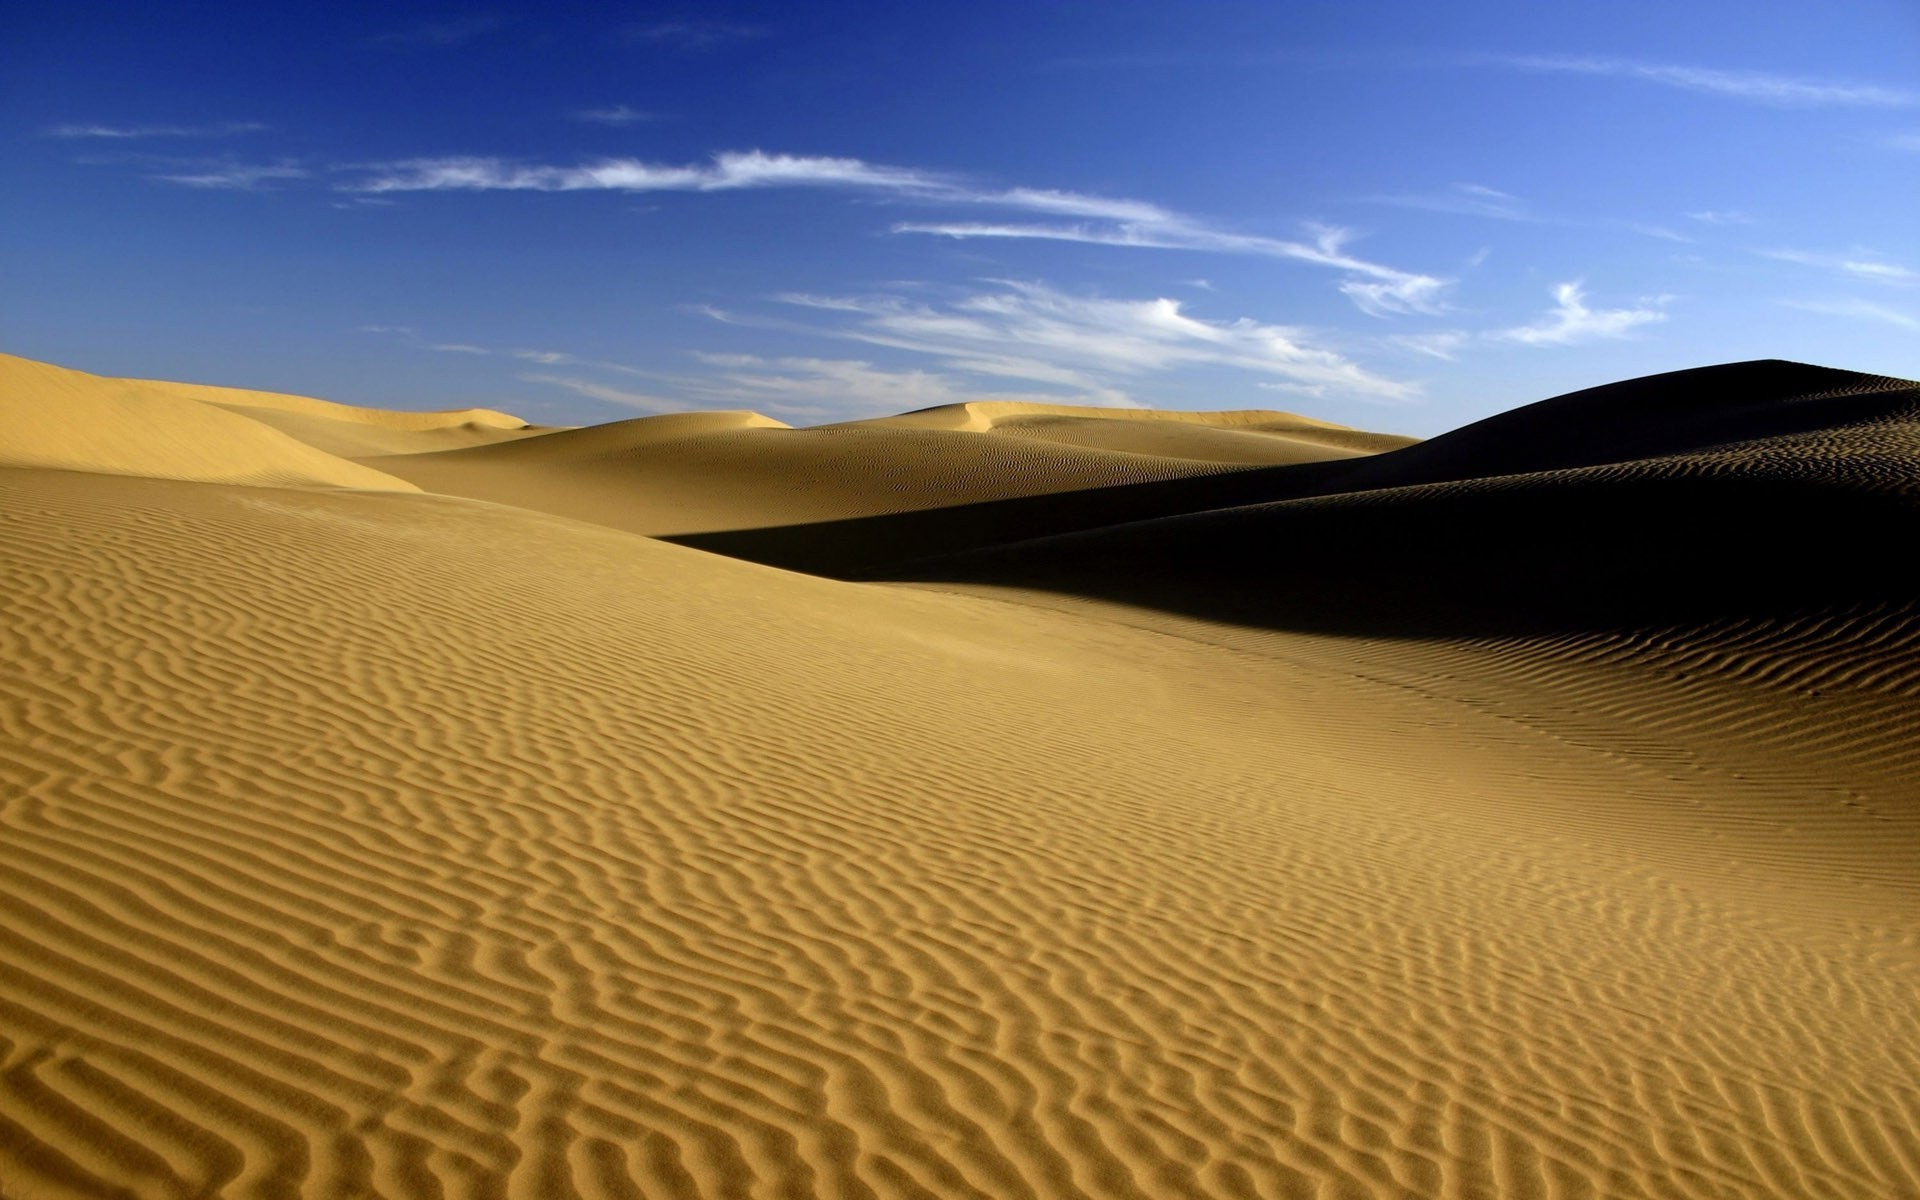 Tapete Sandfarben 12 Outstanding Hd Sand Wallpapers